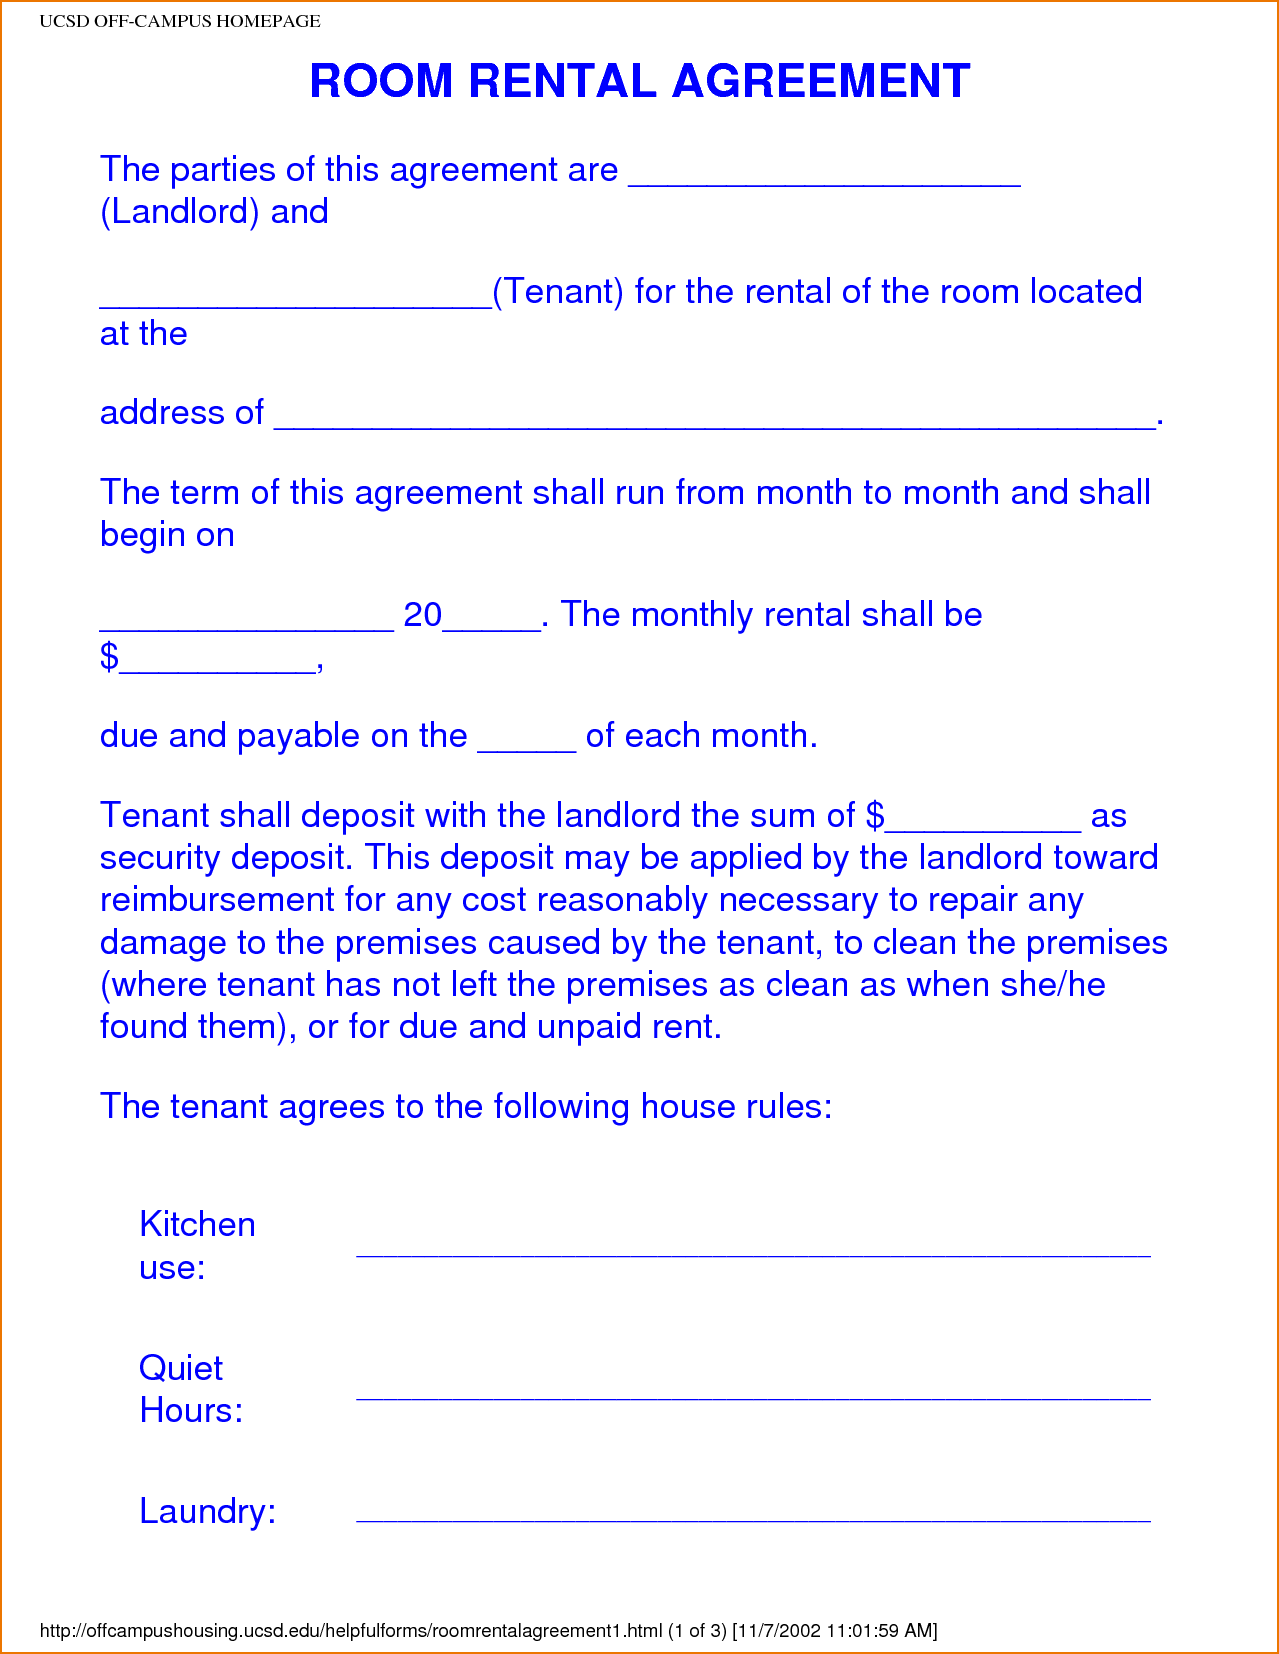 Image Result For College Roommate Agreement Template Room